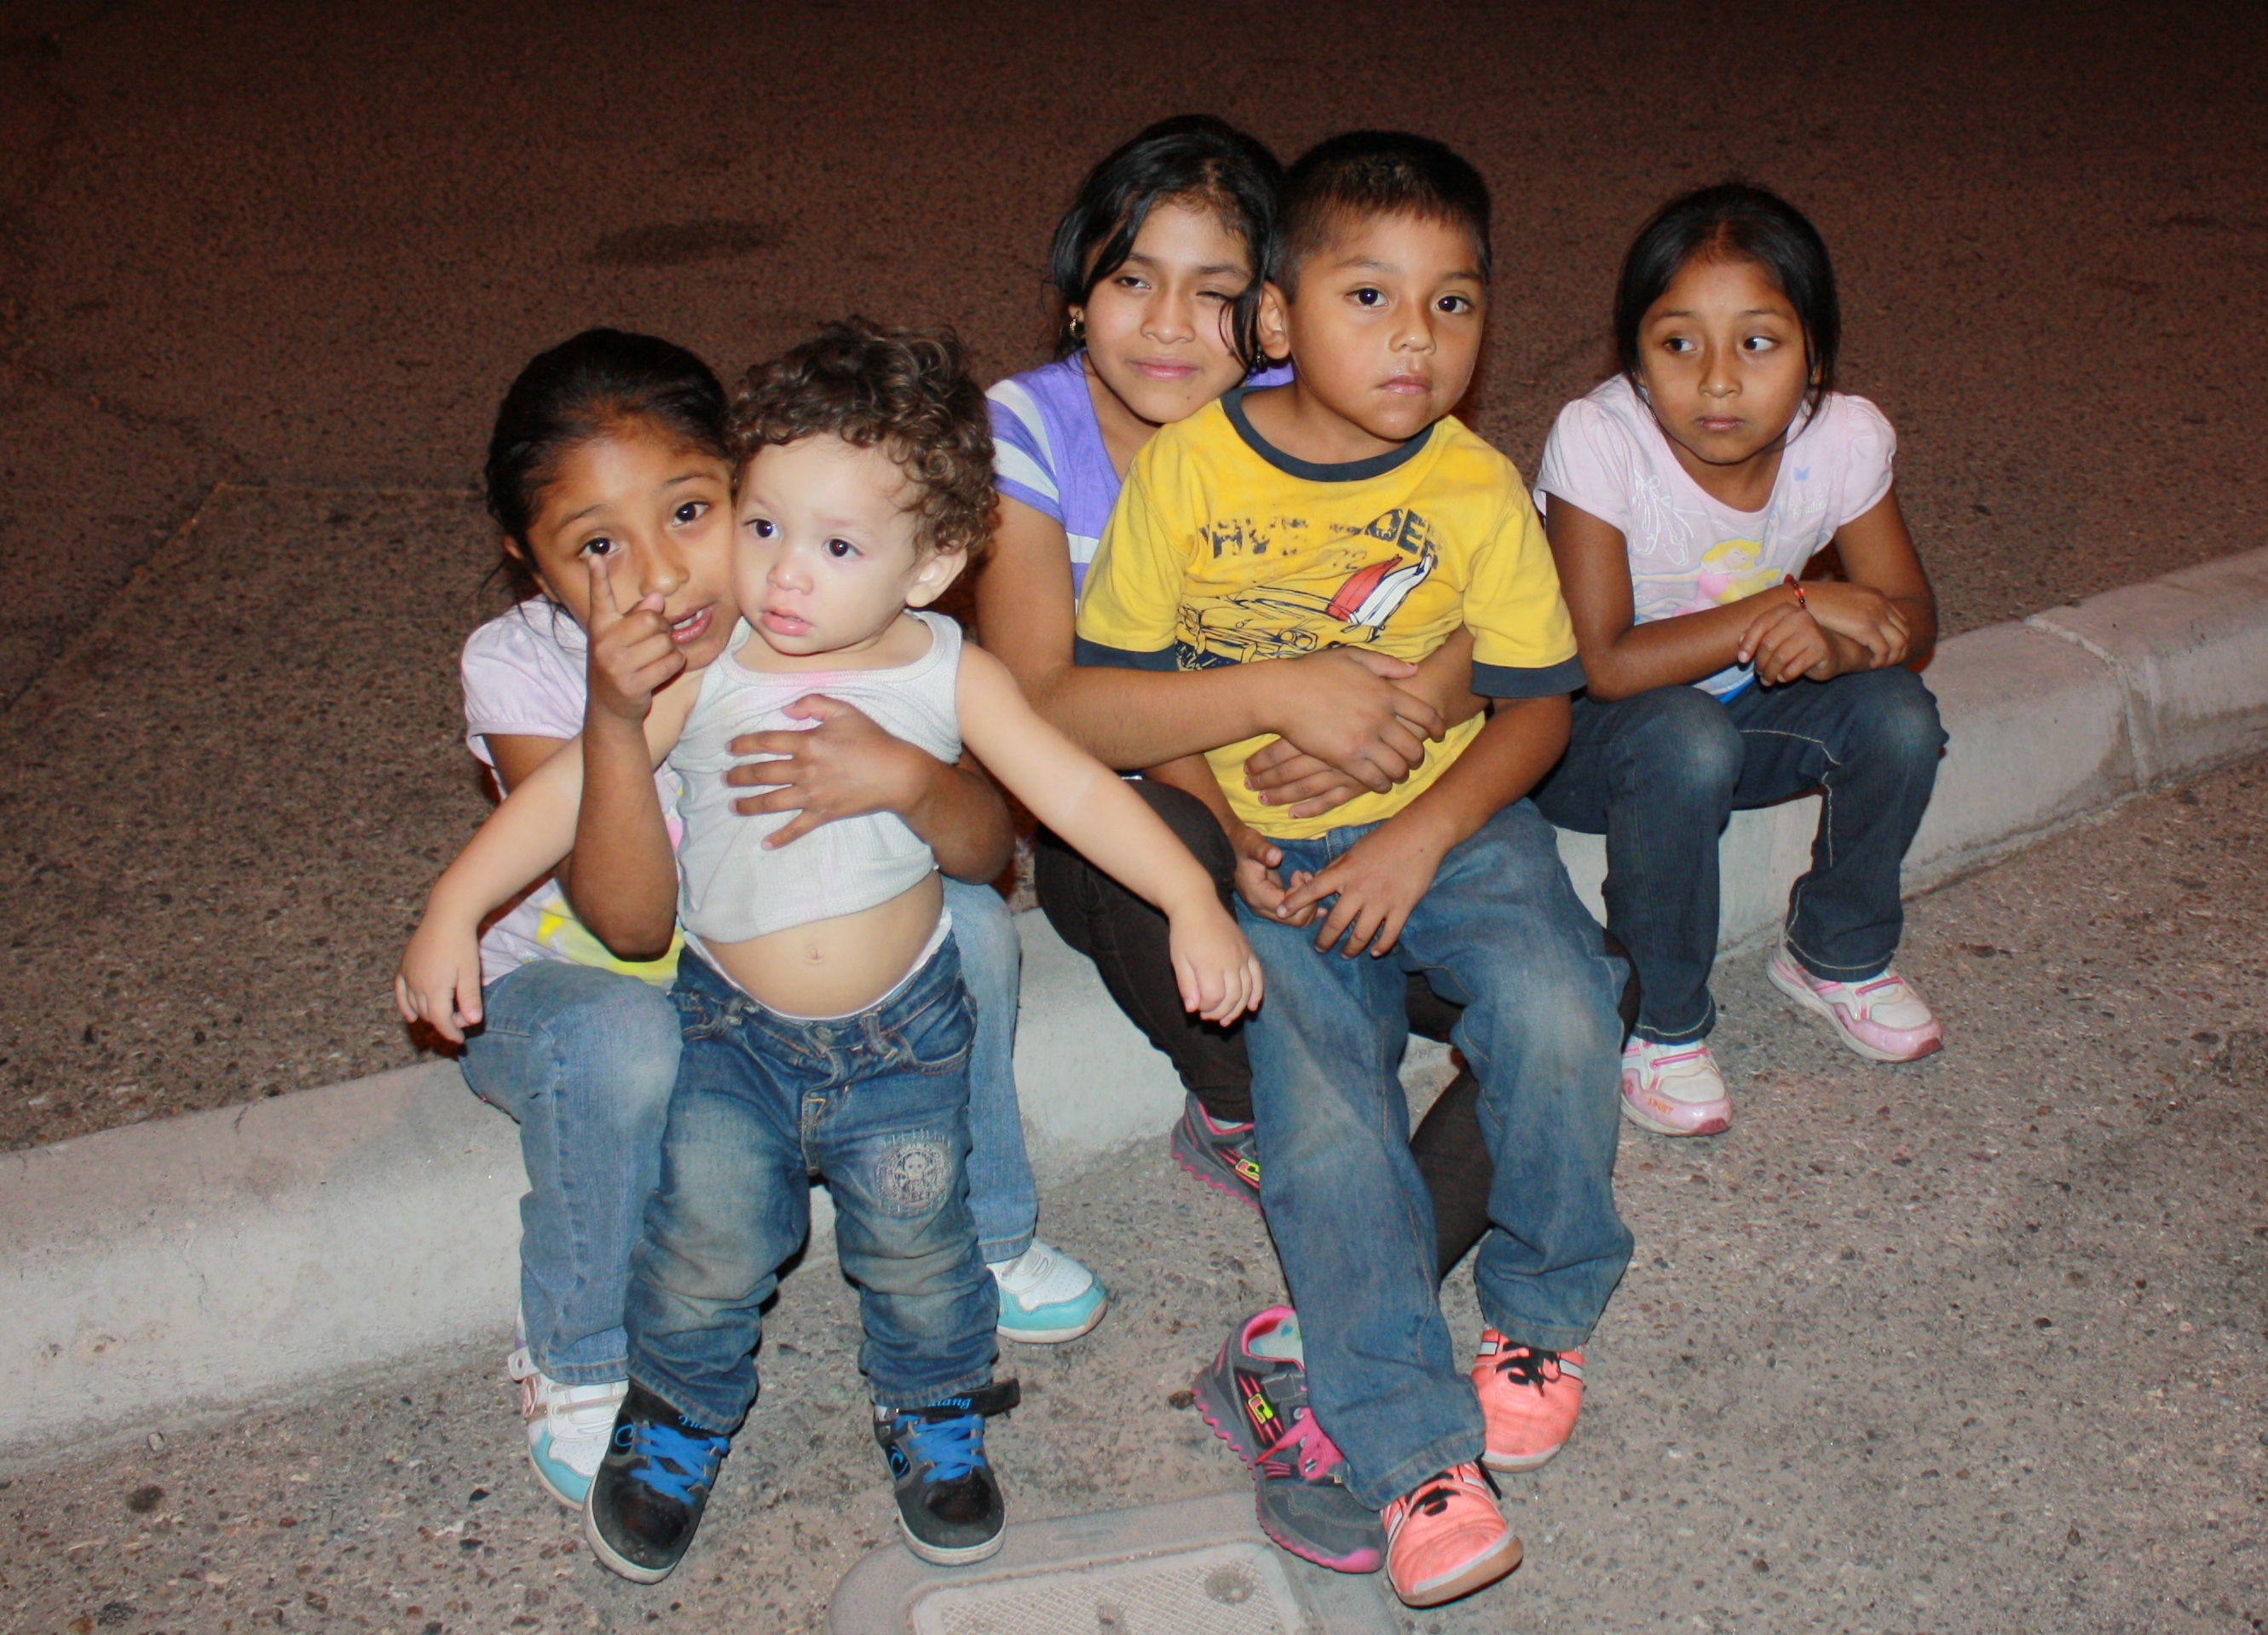 Unaccompanied children at US border